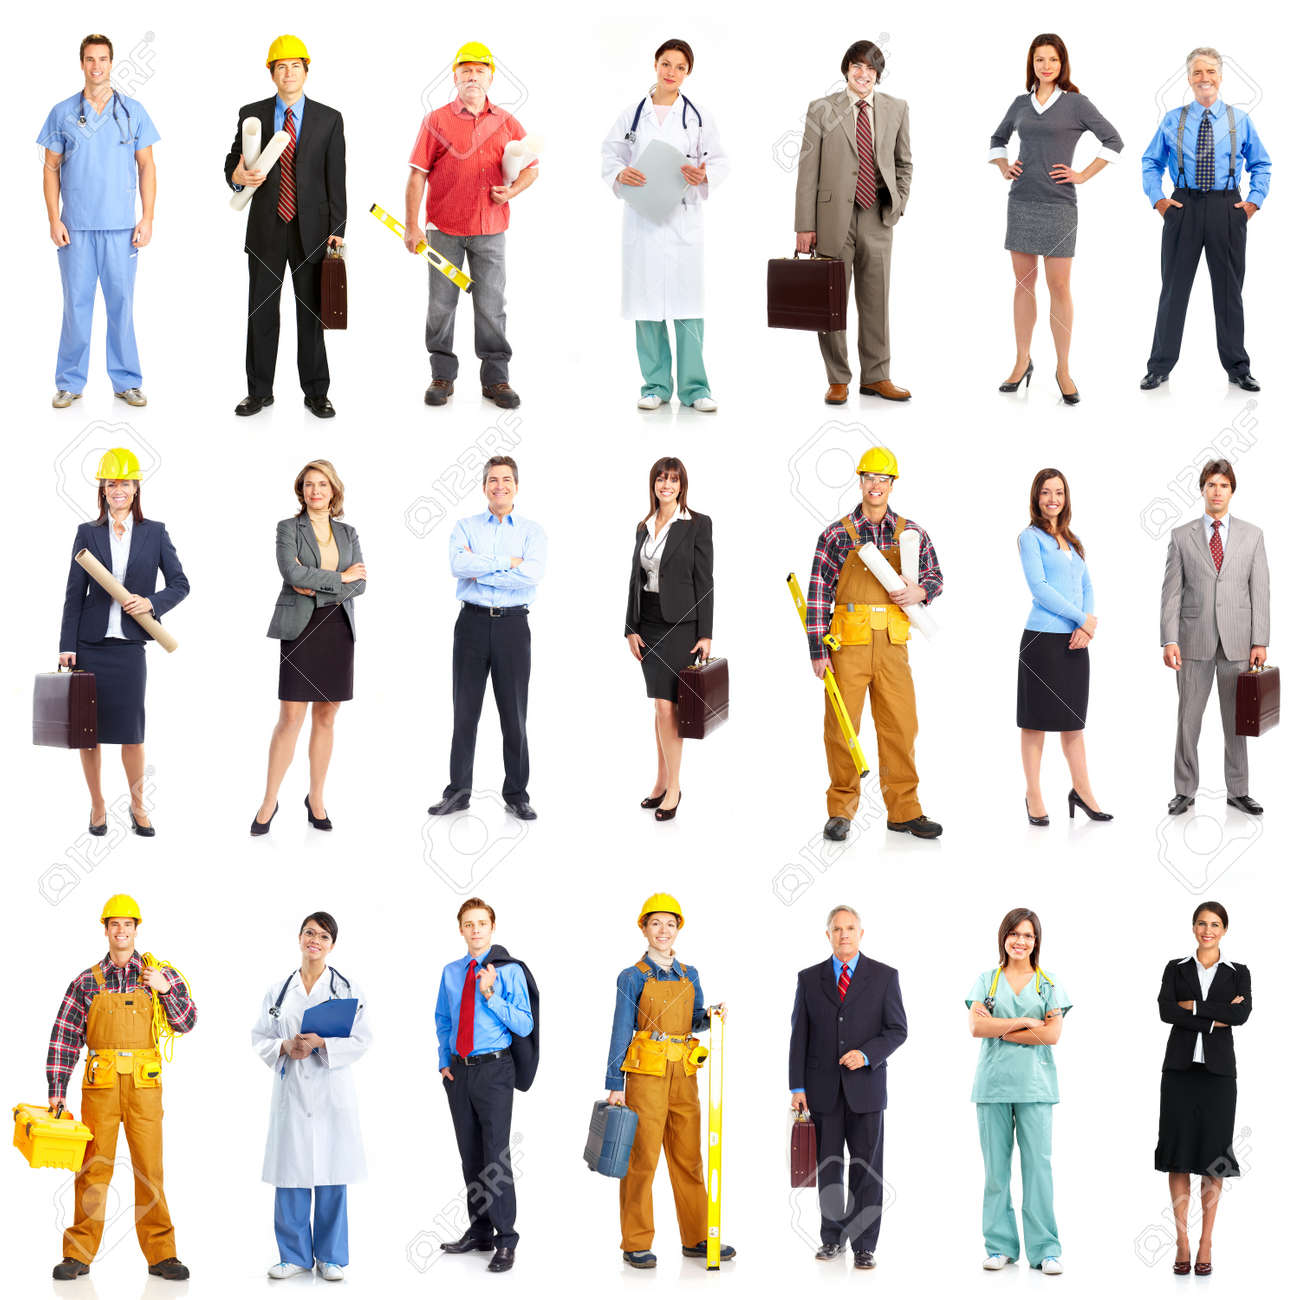 Business People, Builders, Nurses, Doctors, Workers. Isolated Over White  Background Stock